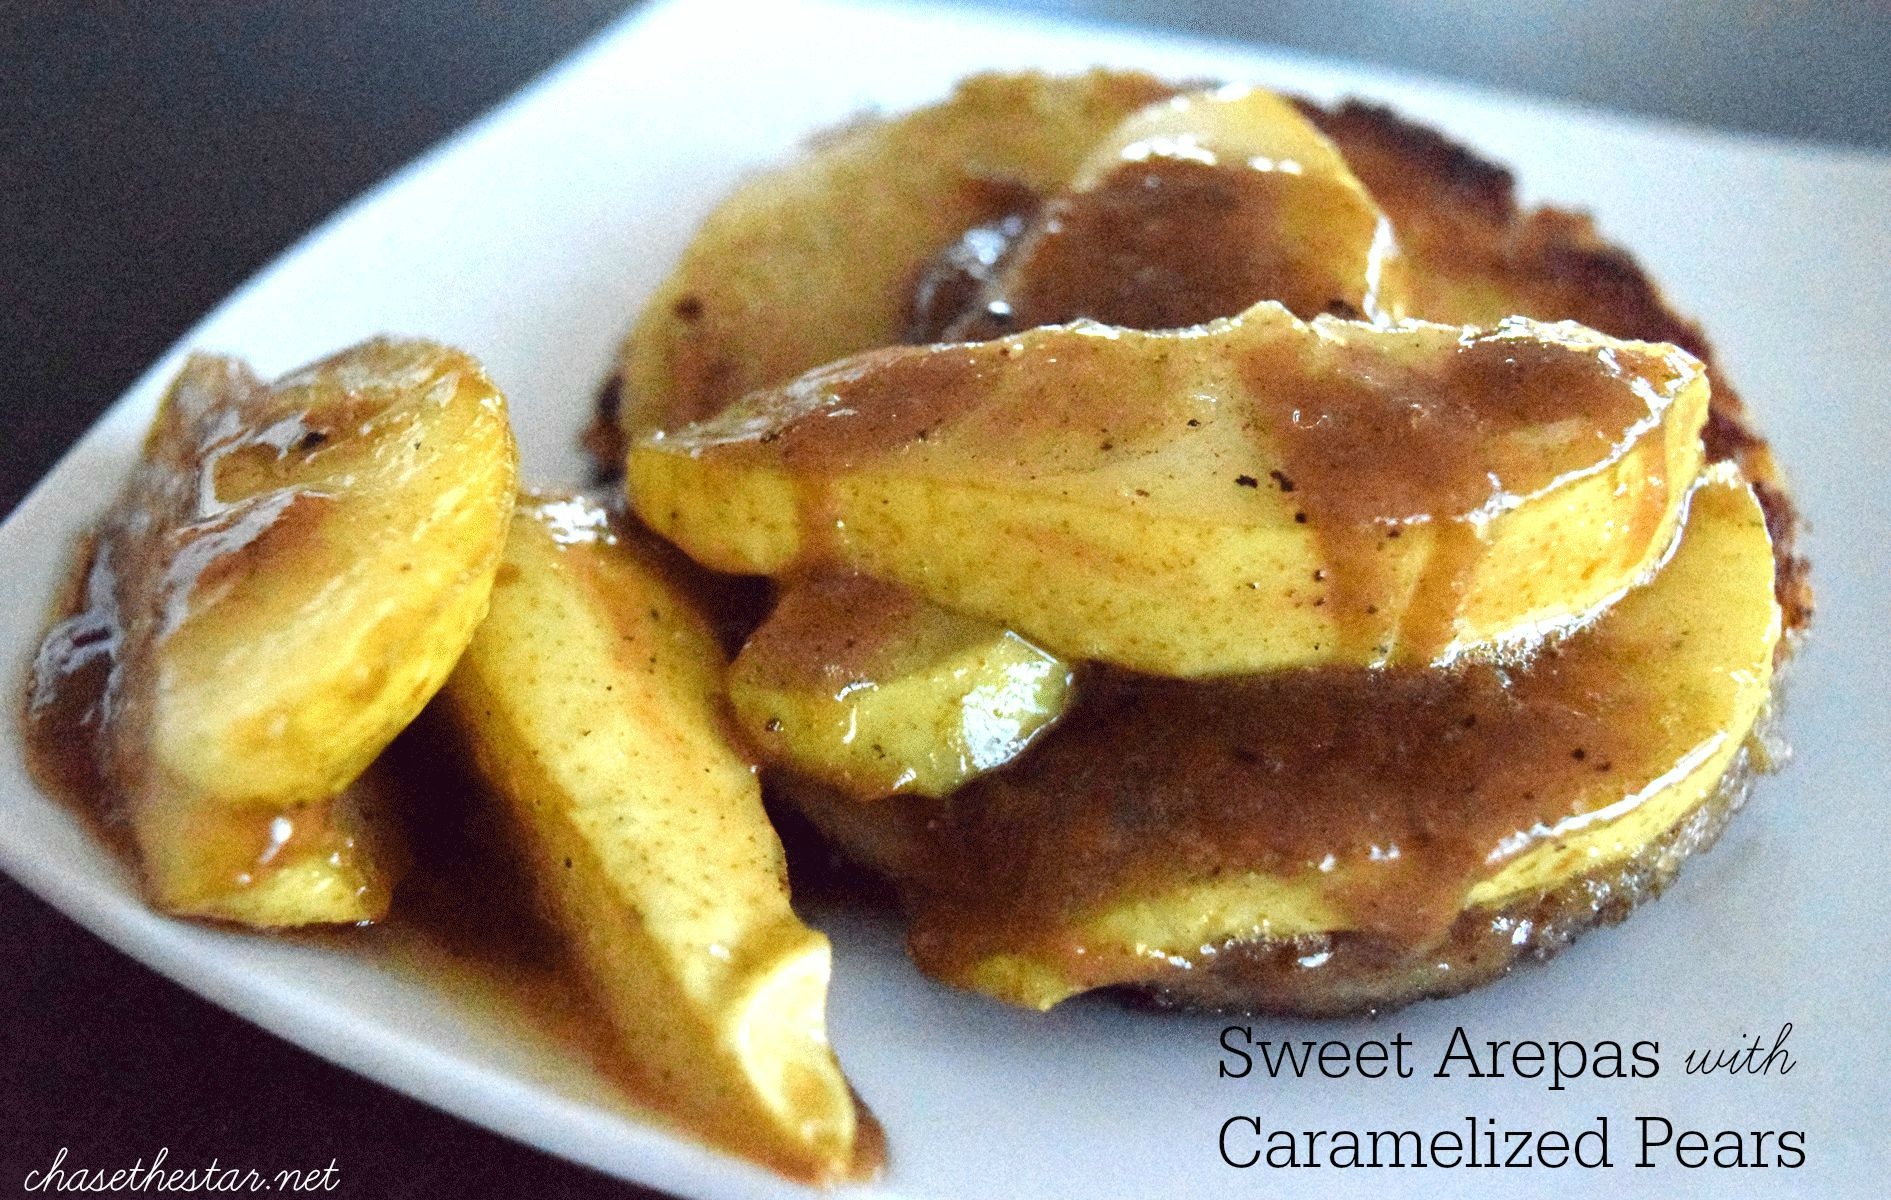 Delicious Sweet Arepas with Caramelized Pears #Recipe #IC #PANfan #ad top